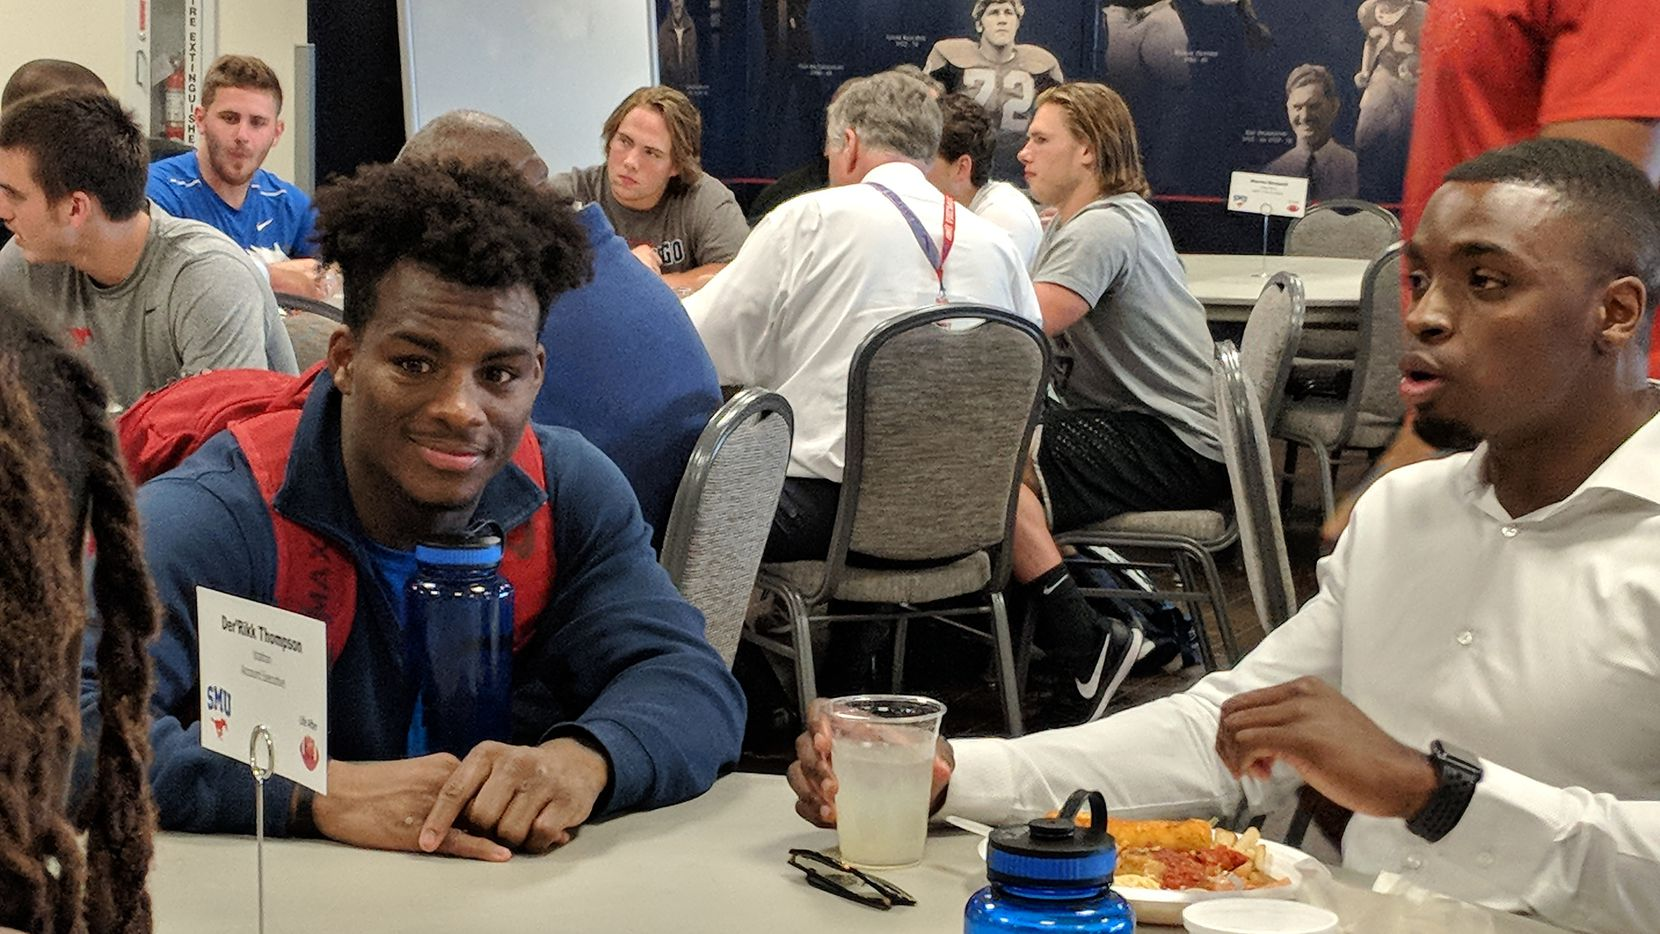 Former SMU receiver Der'Rikk Thompson speaks to current student-athletes like James Proche at SMU's Life After Ball seminar on Wednesday, April 11, 2018.